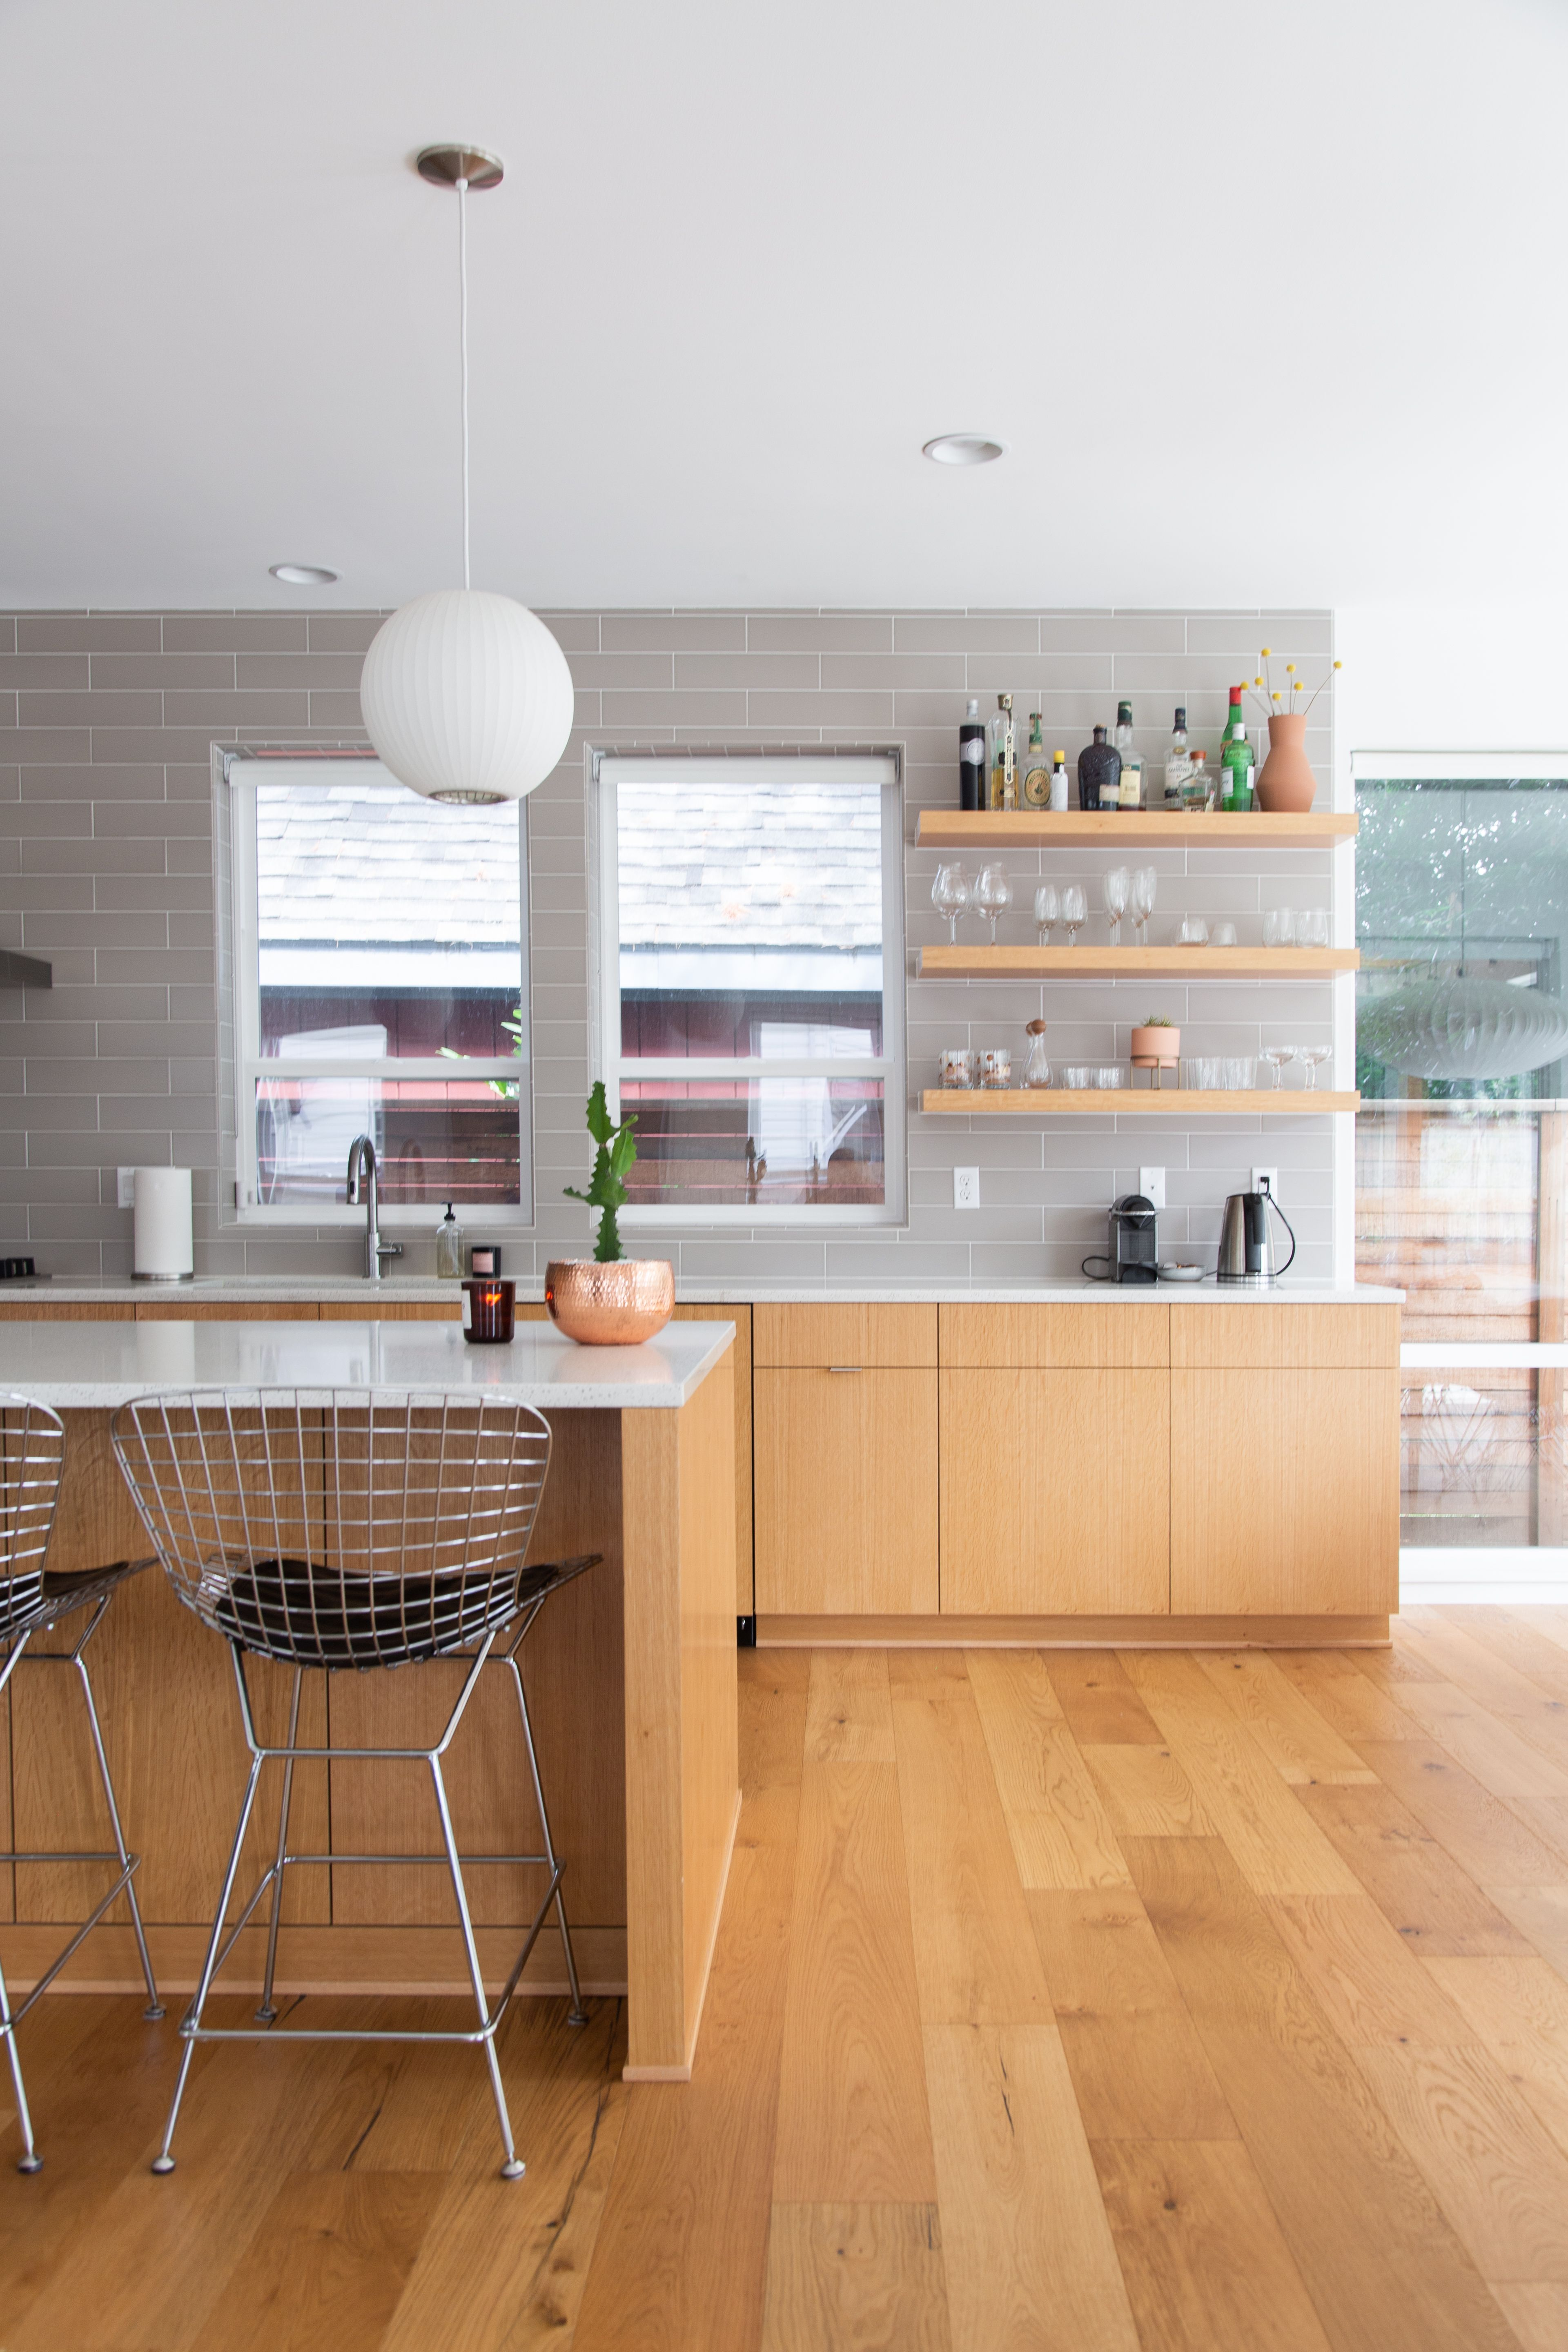 9 Midcentury Modern Flooring Ideas to Try in Your Kitchen   Hunker ...